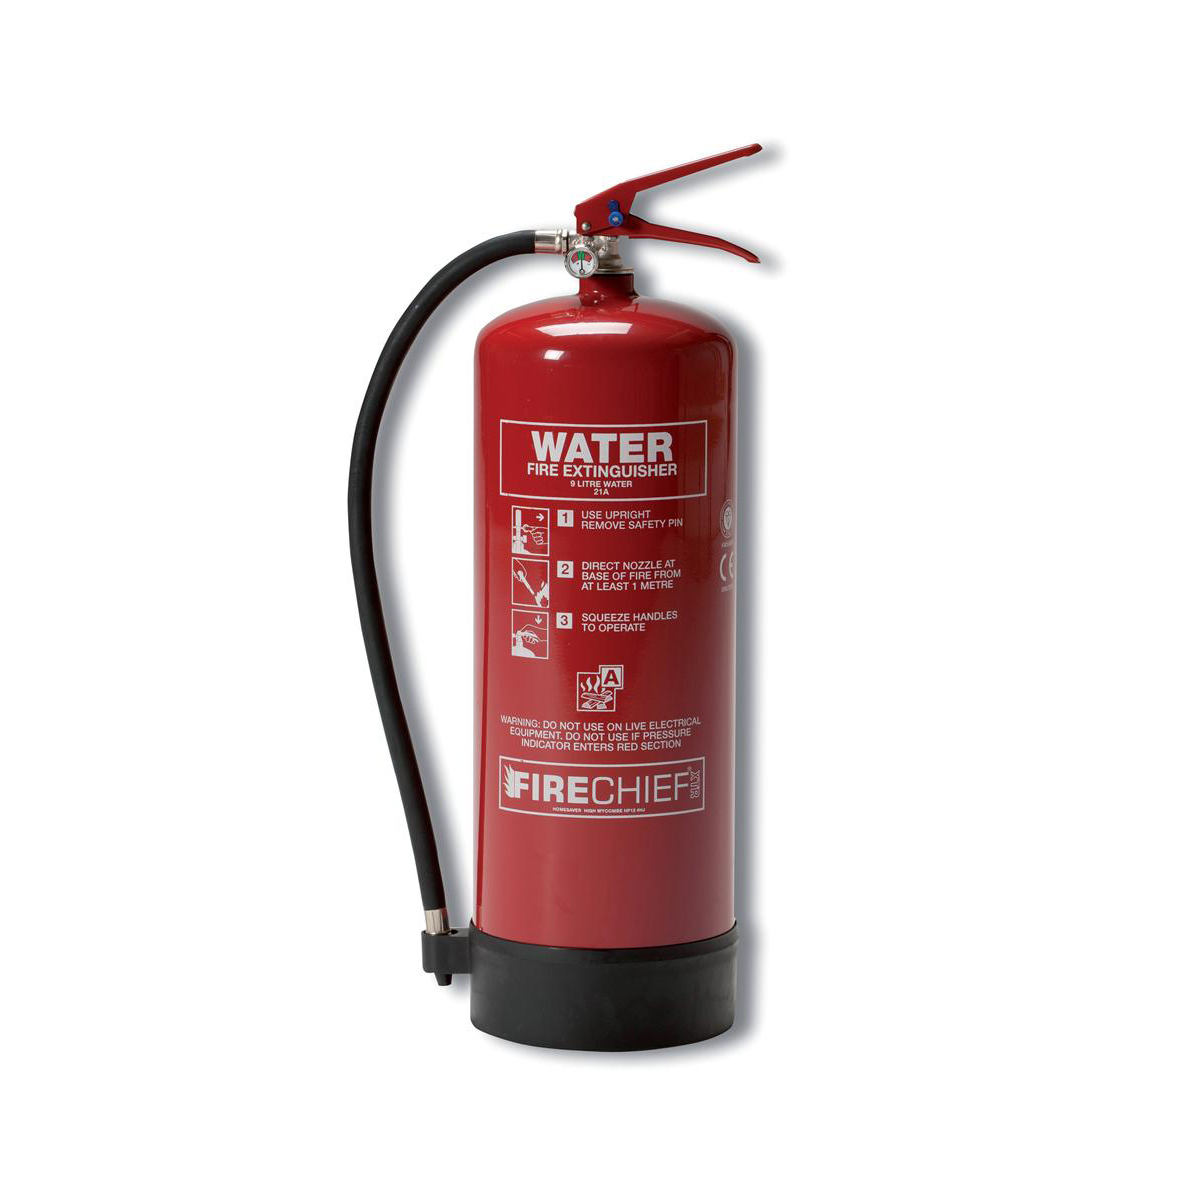 Fire extinguishers Firechief 9.0LTR Water Fire Extinguisher for Class A Fires Ref WG10150